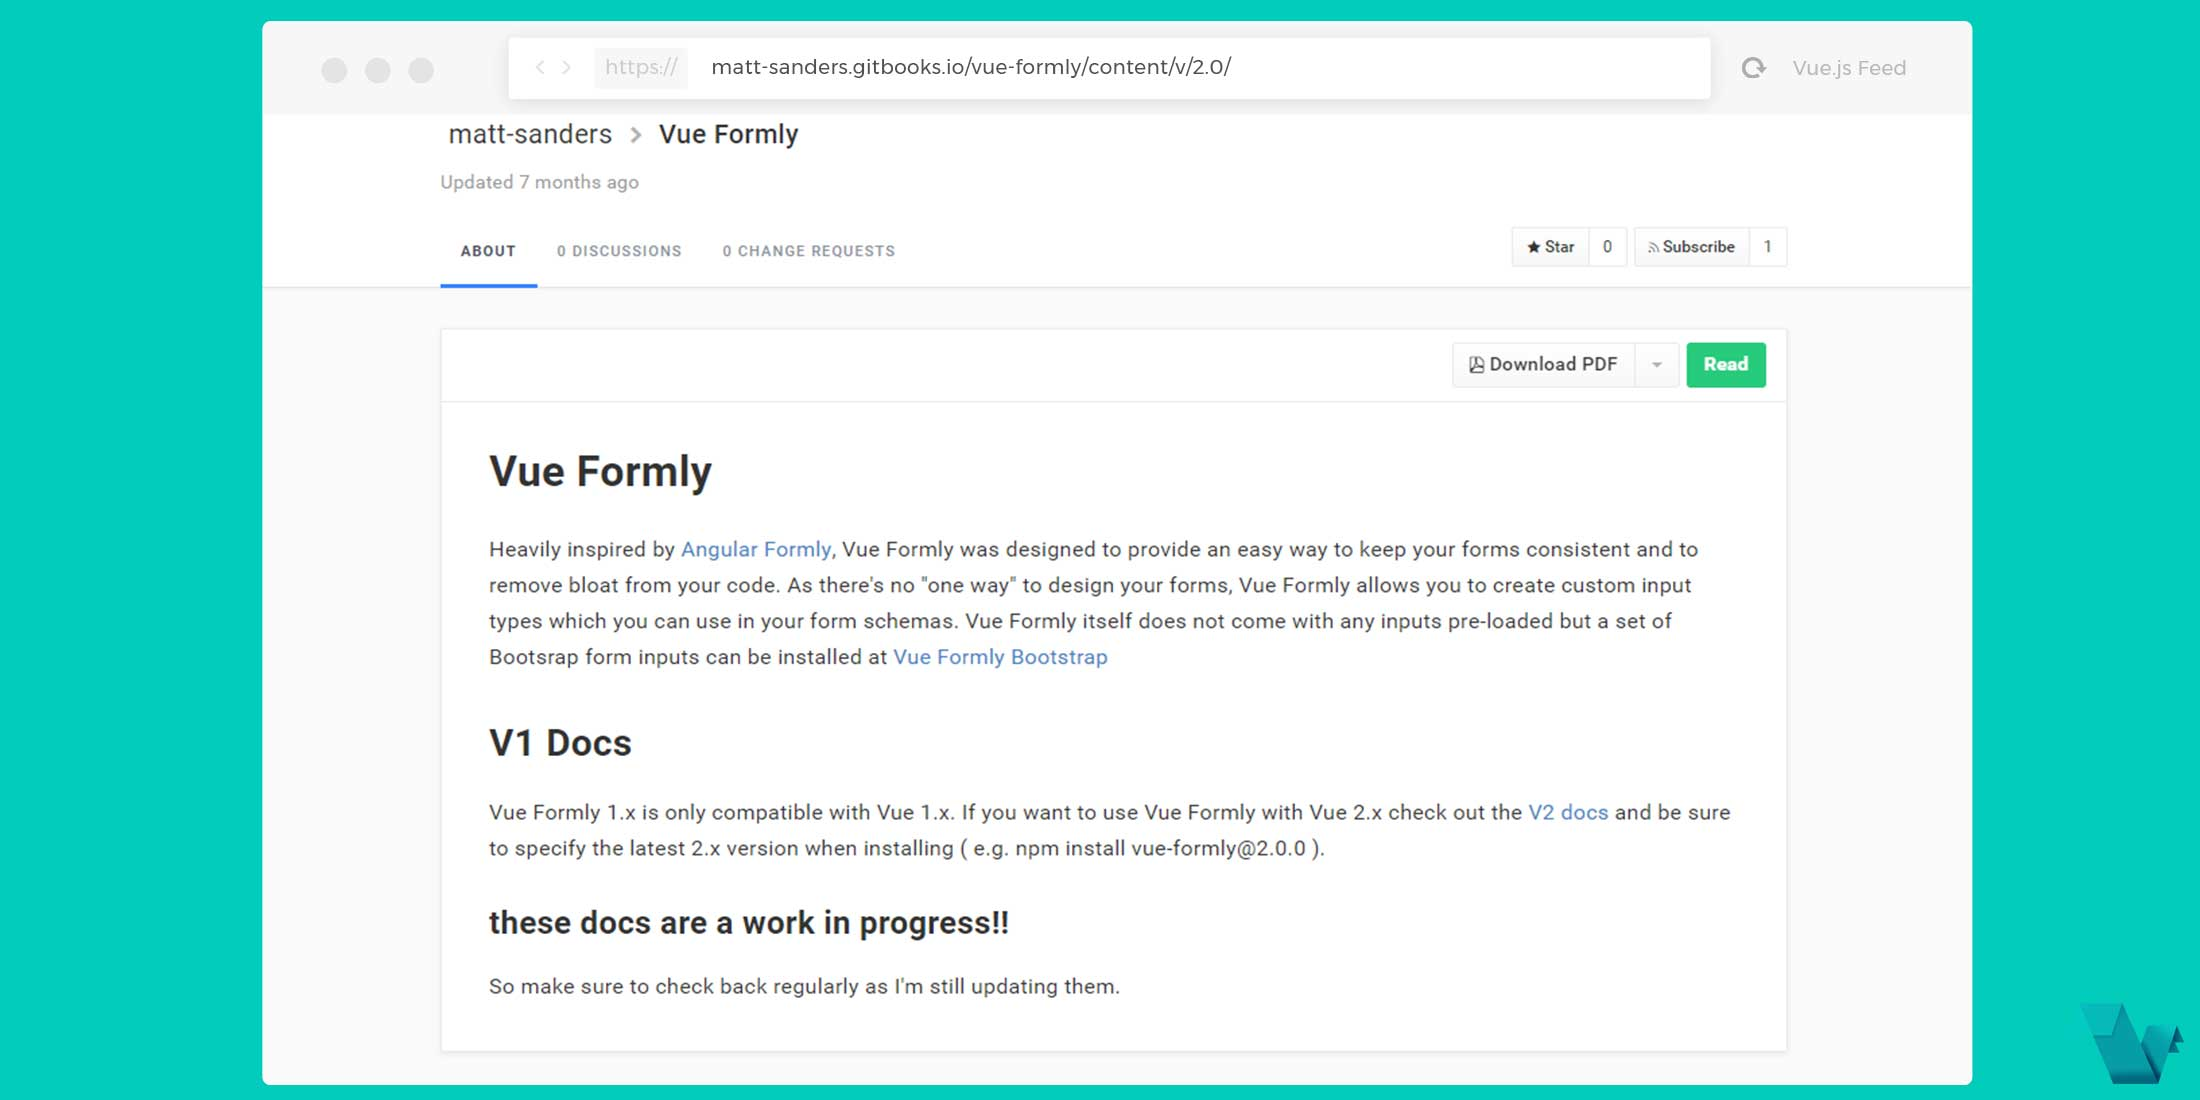 Vue Formly: JavaScript powered forms for Vue js - Vue js Feed